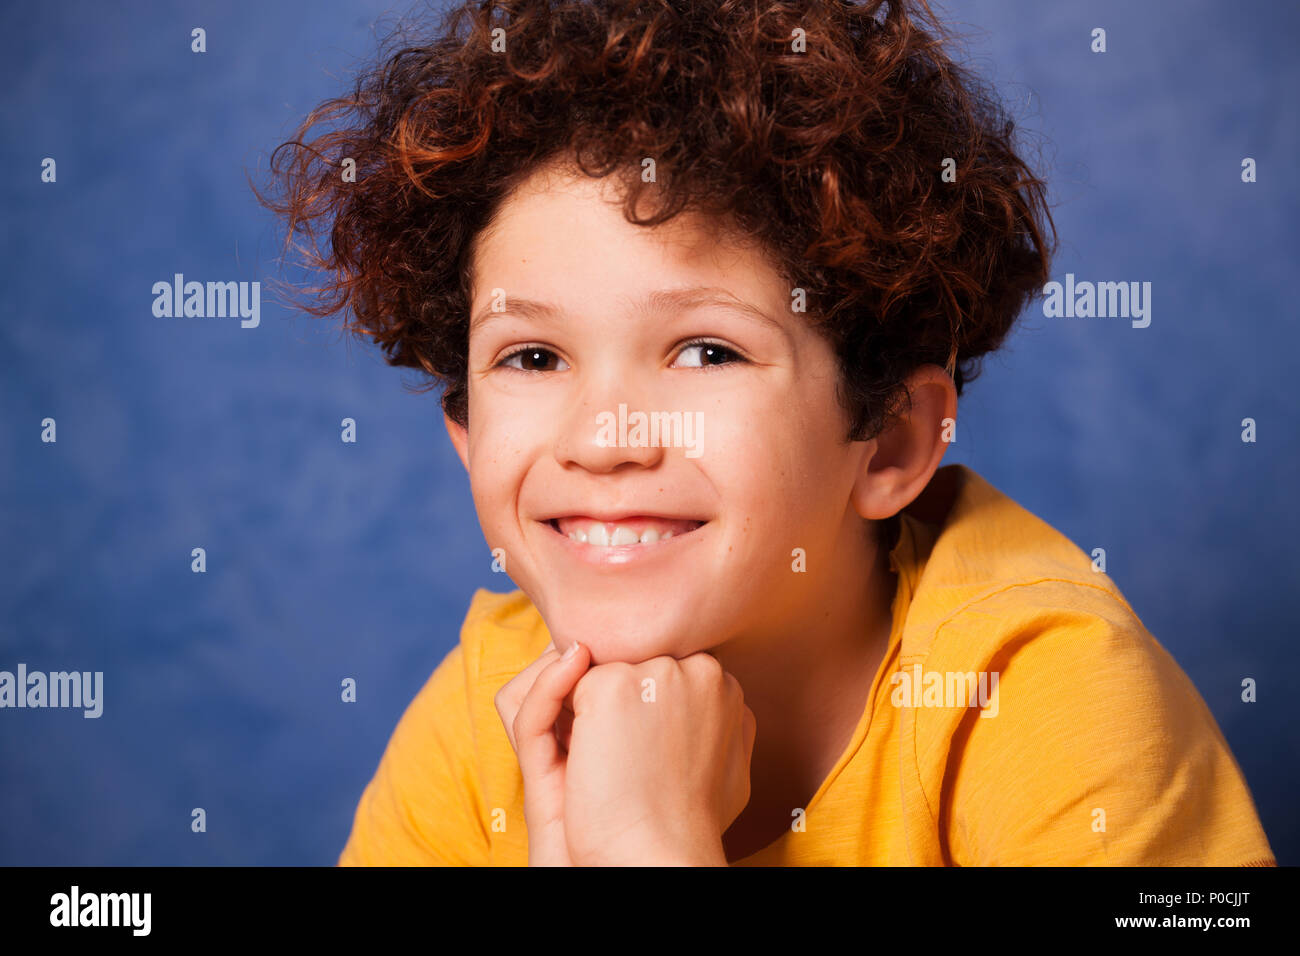 Portrait of happy young boy with curly hair against blue background - Stock Image